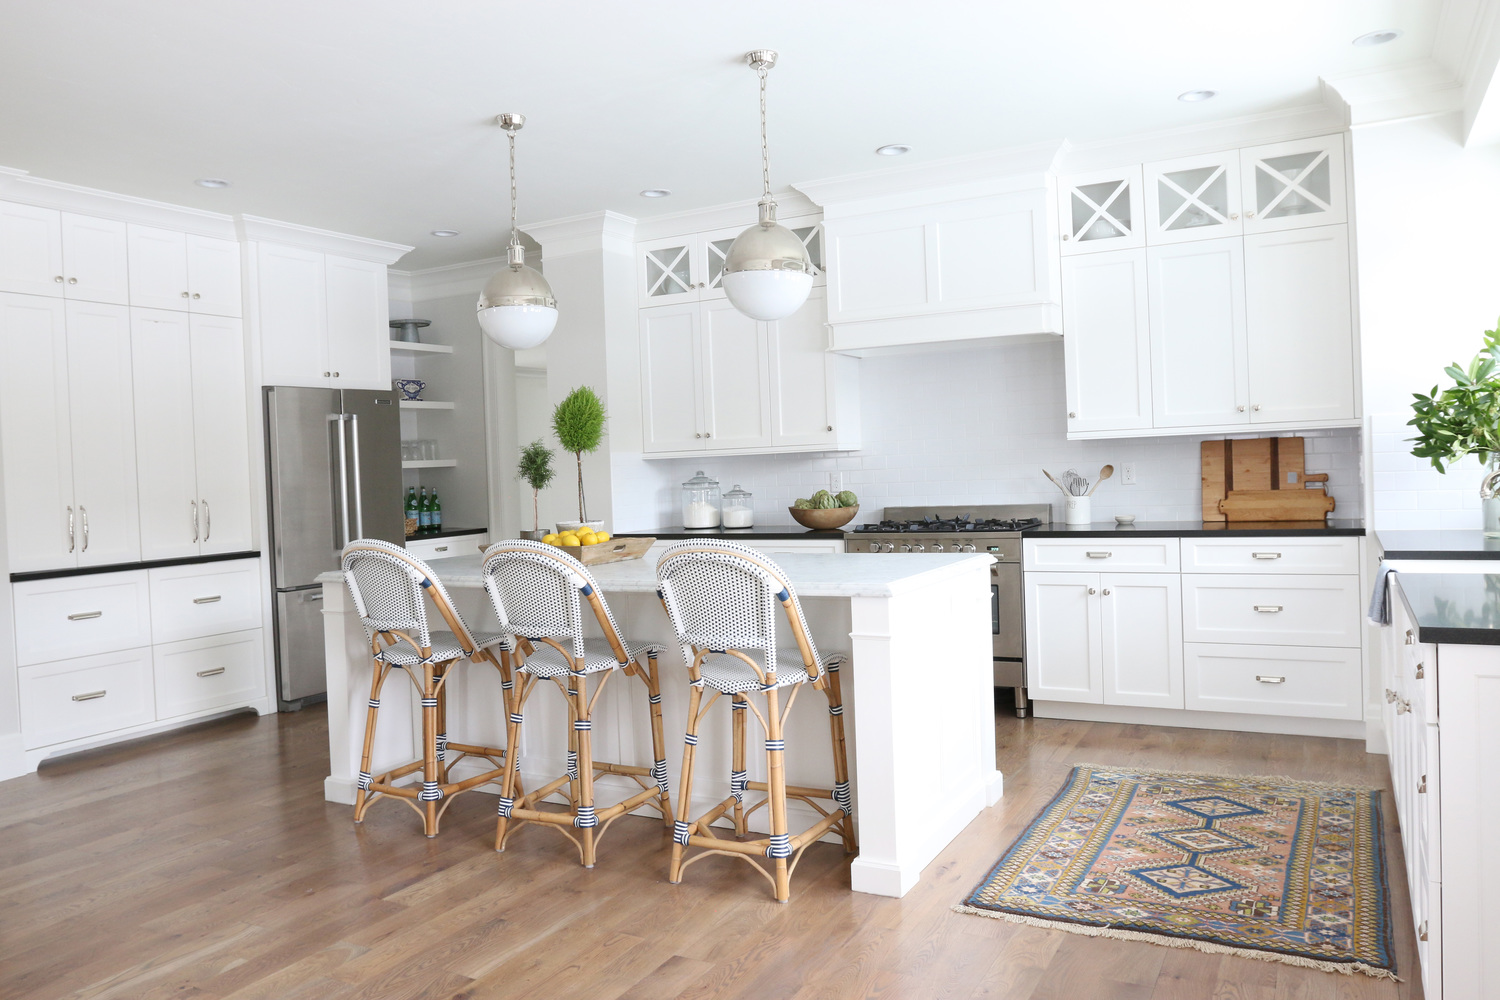 White kitchen with marble island and black countertops on perimeter. Studio McGee